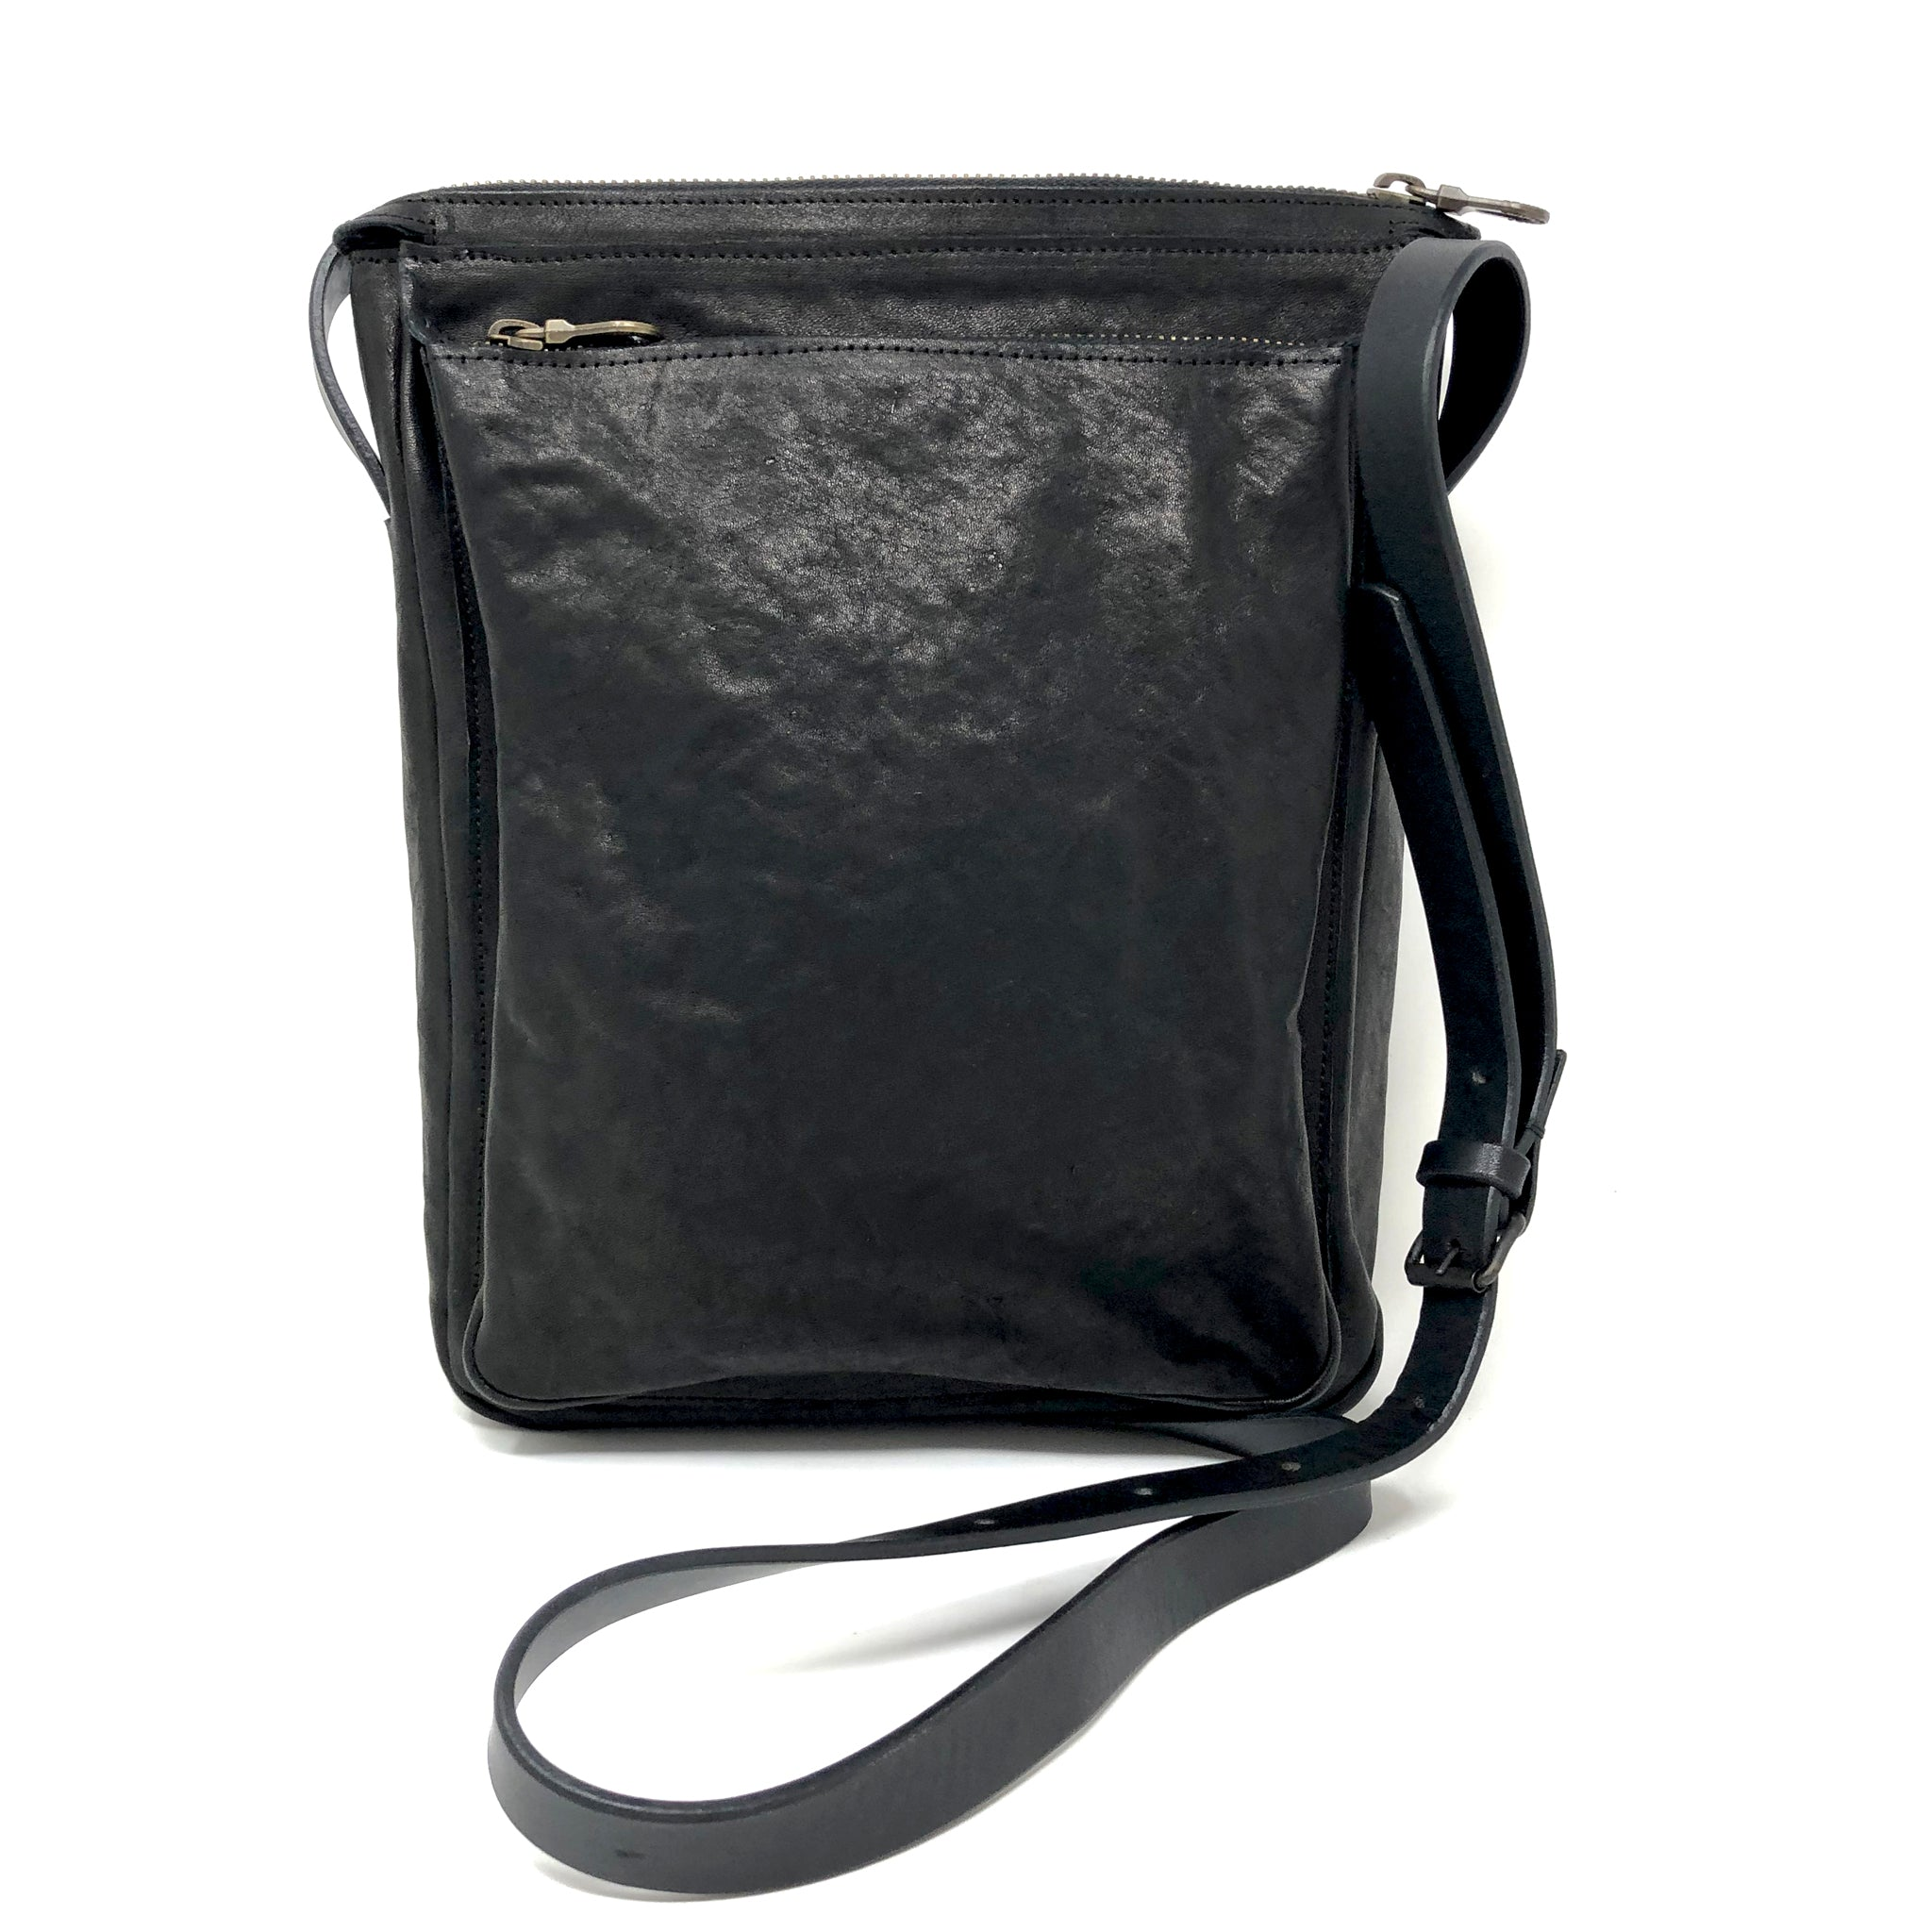 Brasilia Leather Bag